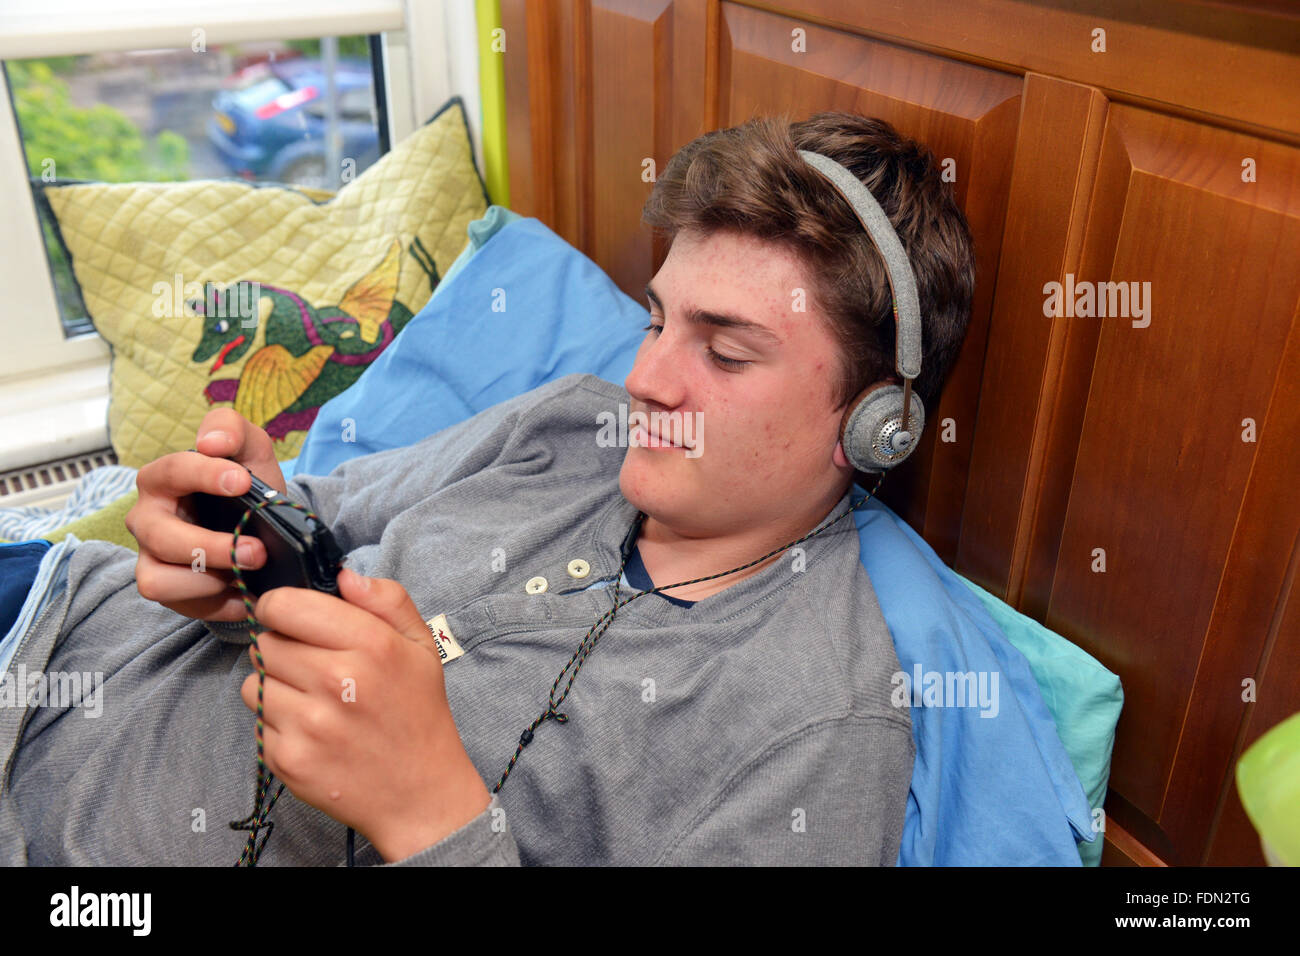 teenage boy lies on his bed while using the internet on his mobile